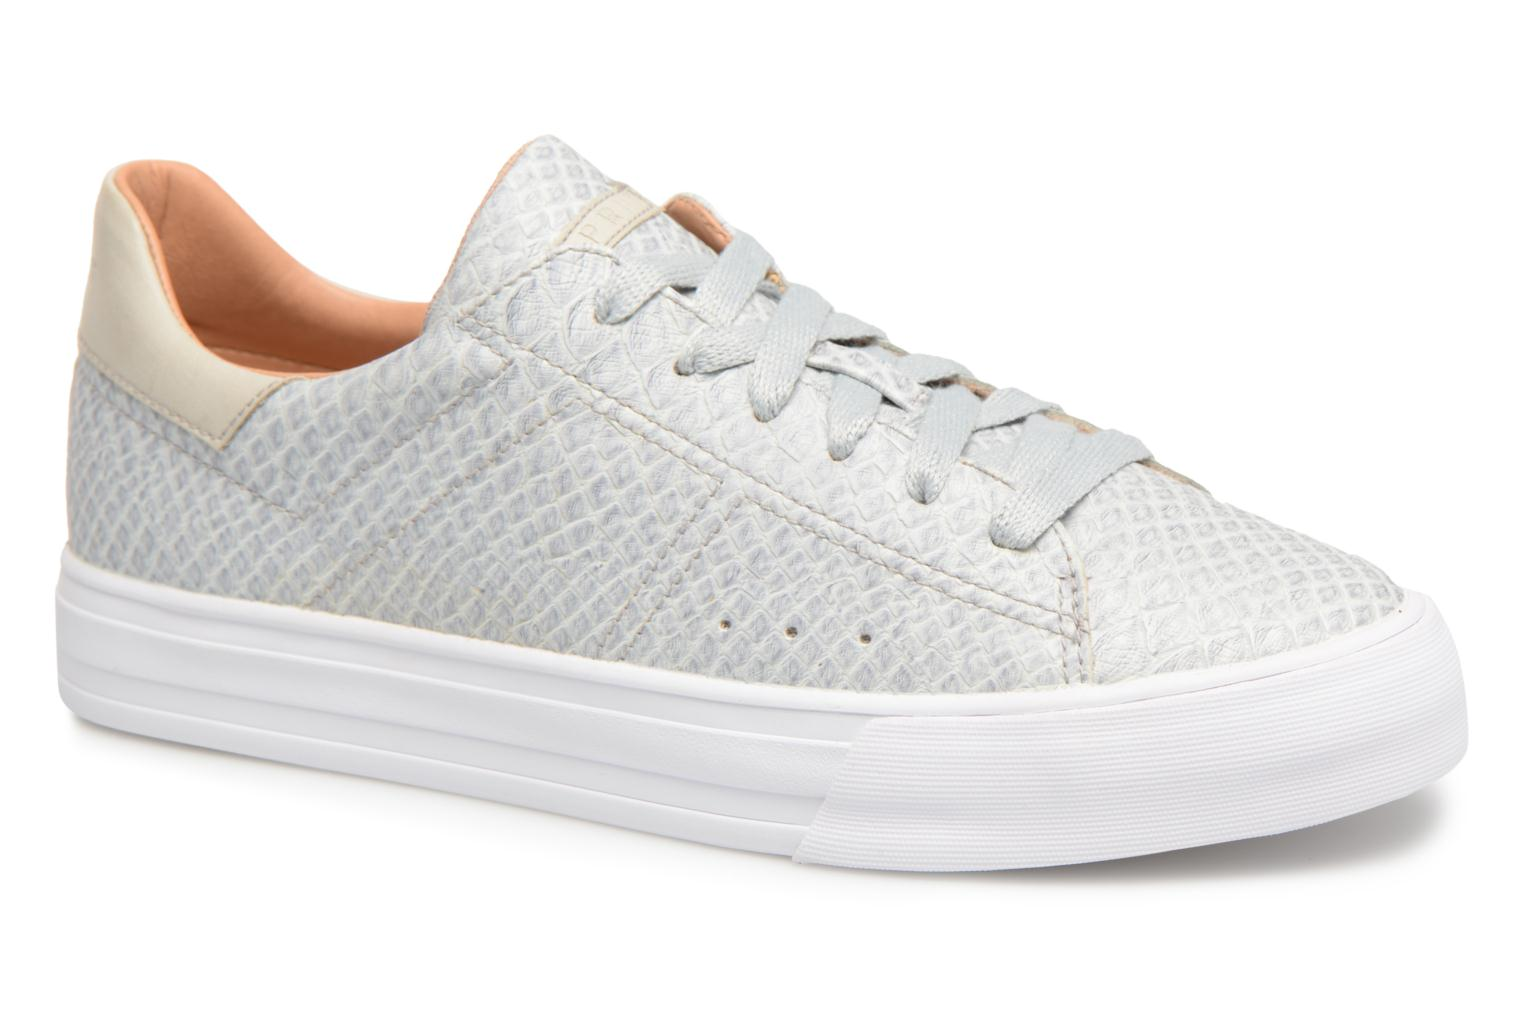 shop for sale ESPRIT Simona Lace Up Trainers geniue stockist cheap online free shipping newest discount authentic sale great deals ycvbot